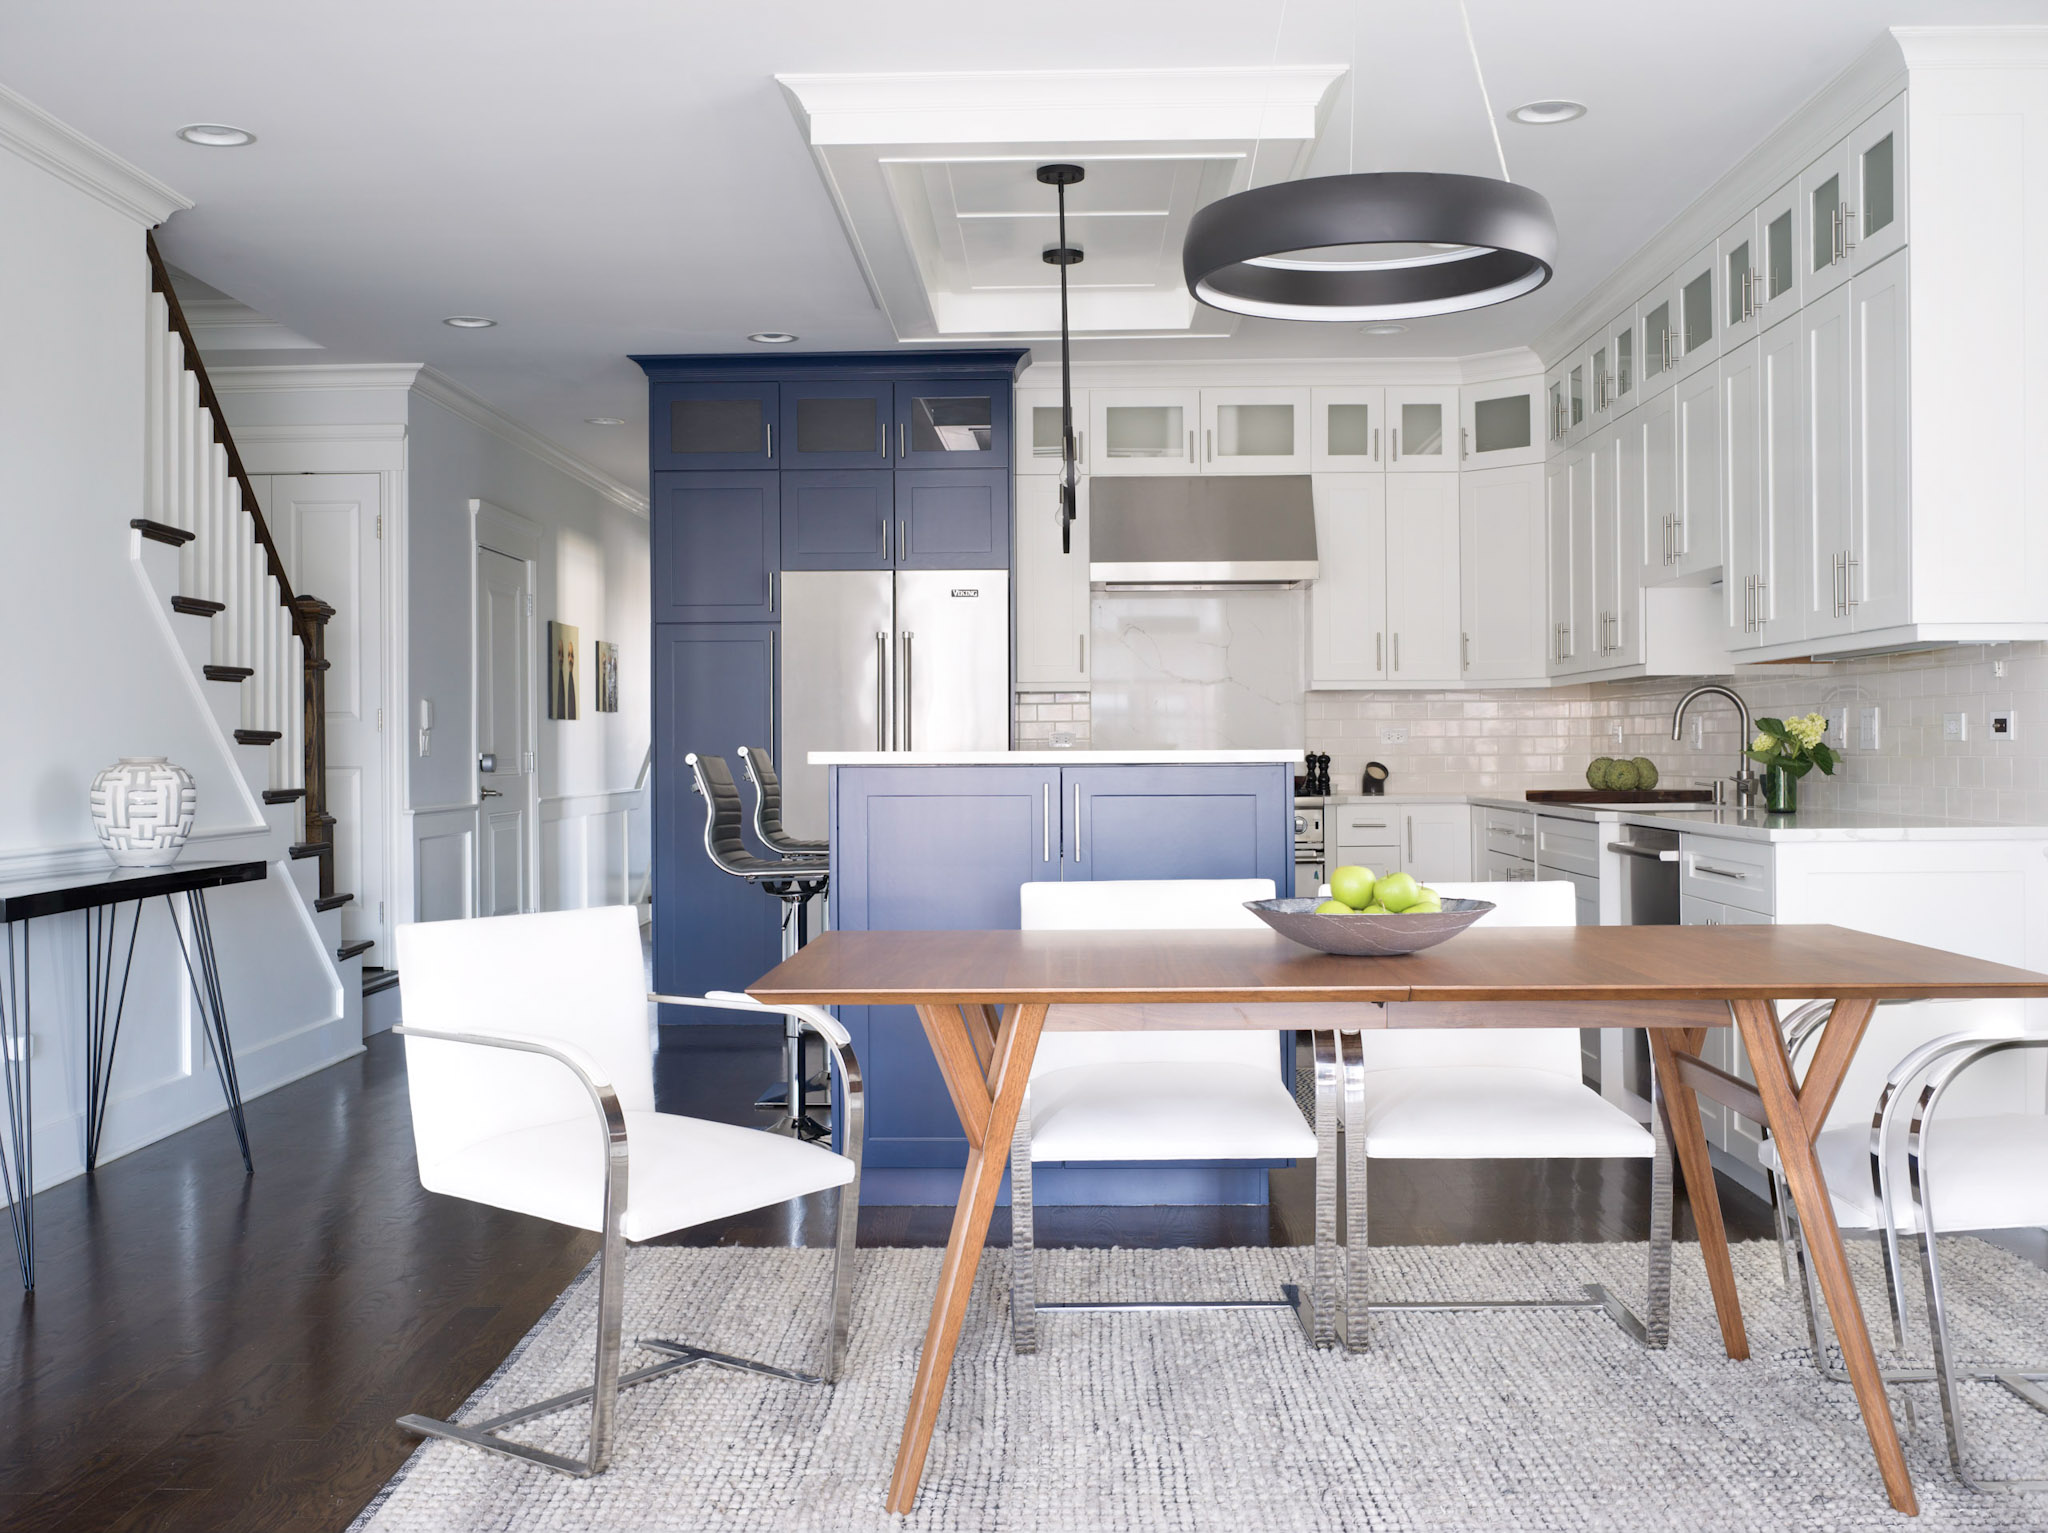 Kitchen Cabinet Trends For 2020 Kitchn